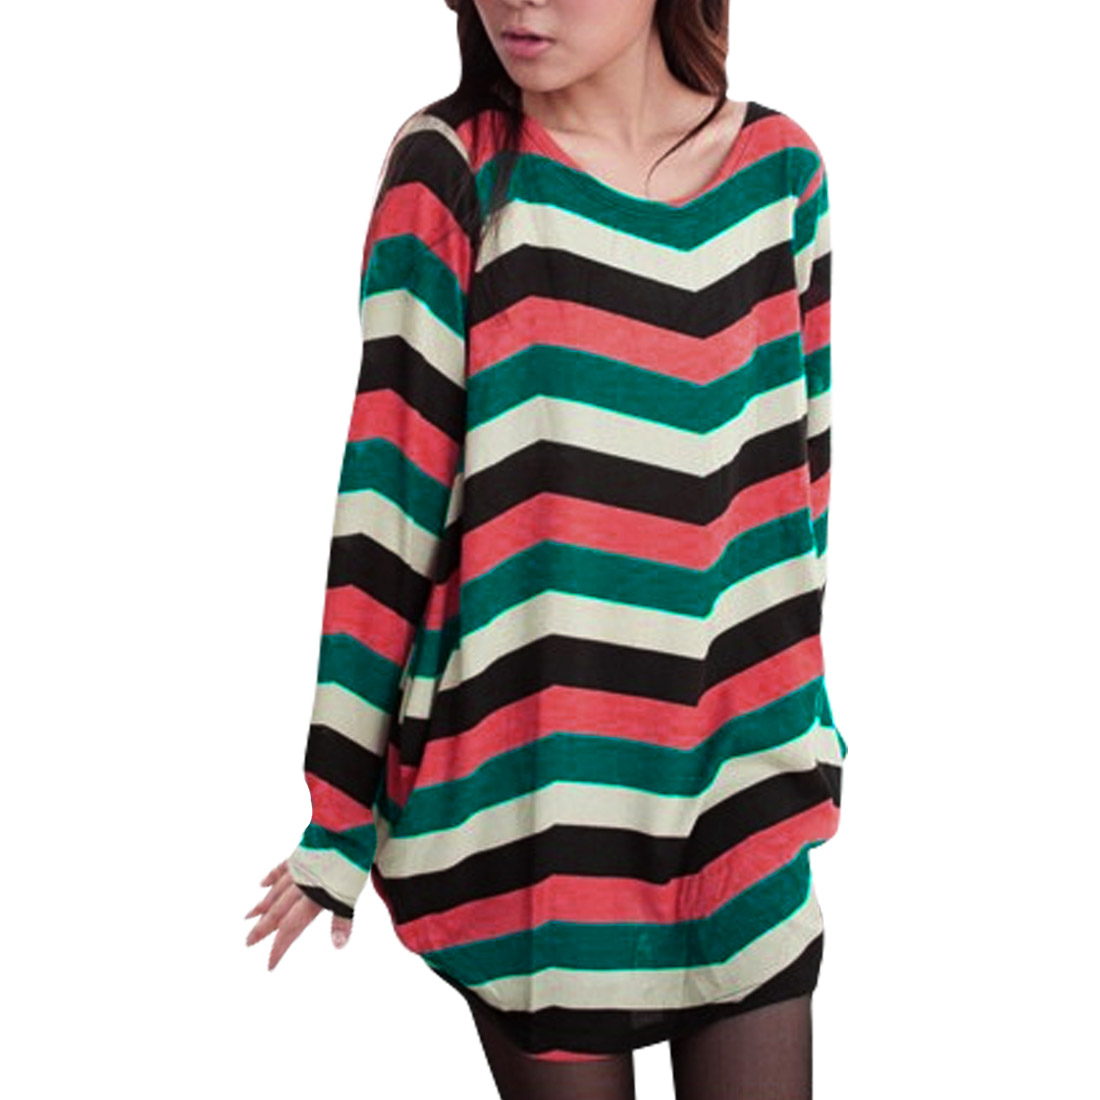 Women Round Neck Long Sleeved Multicolor Zig-Zag Knit Tunic Shirt S